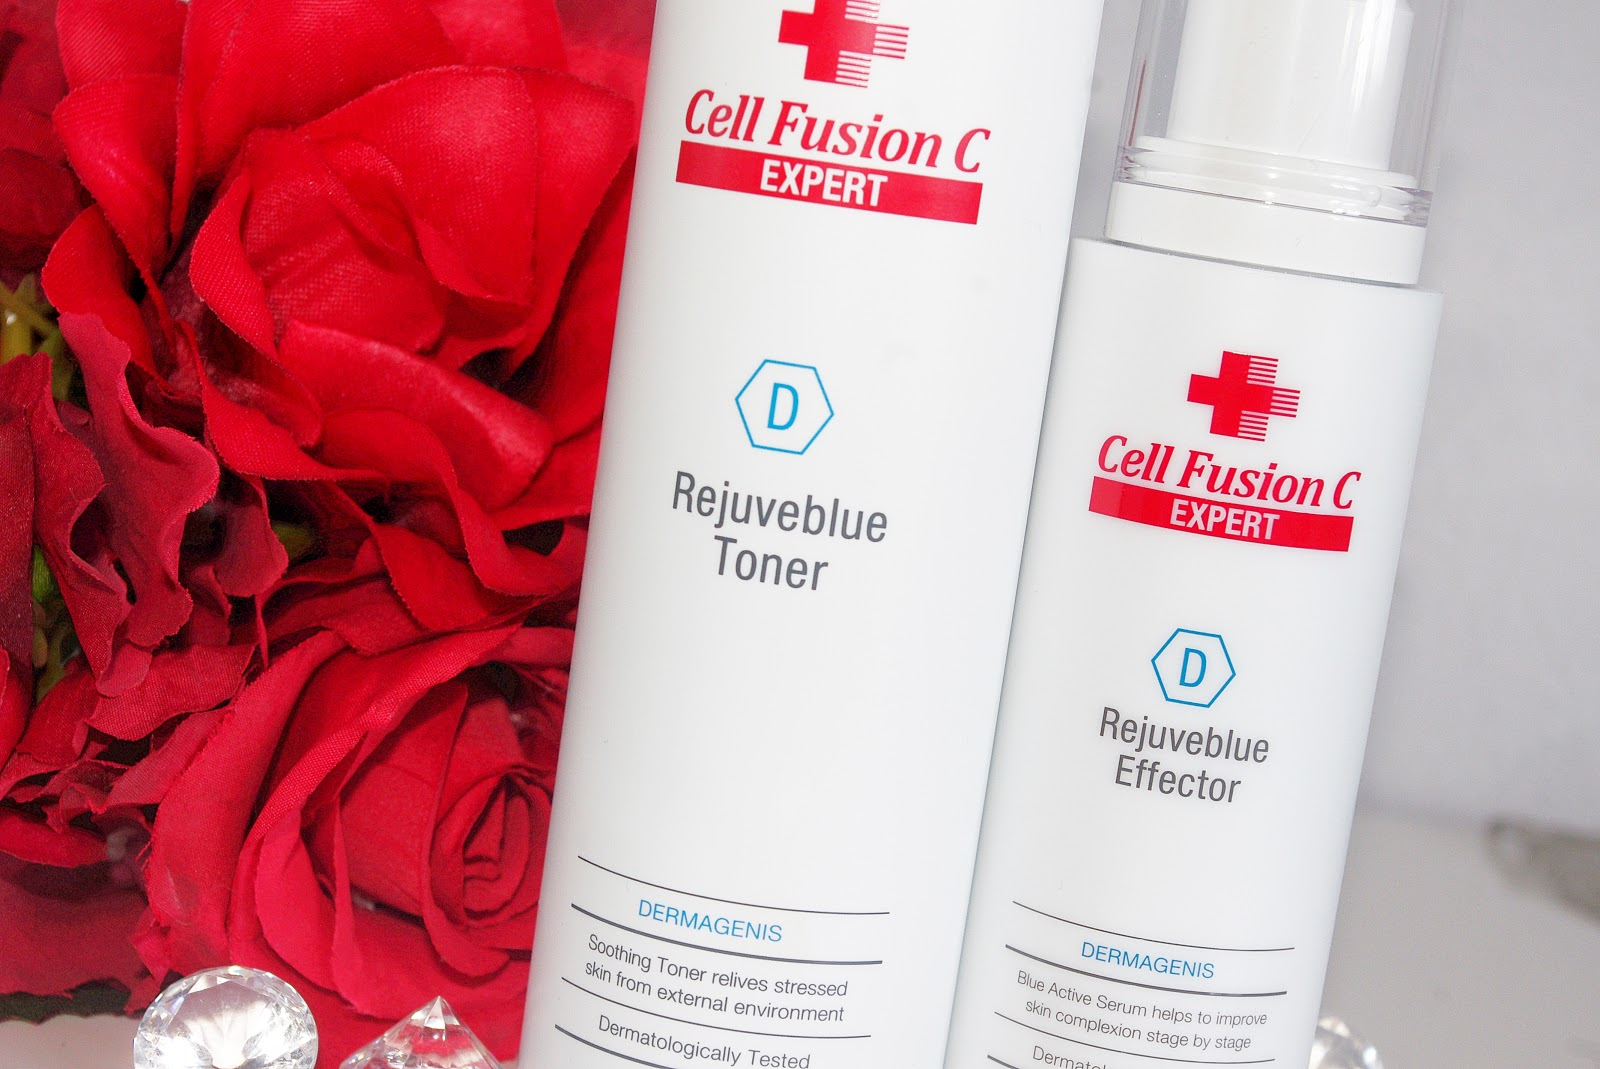 Cell Fusion C Expert Rejuveblue Effector Toner